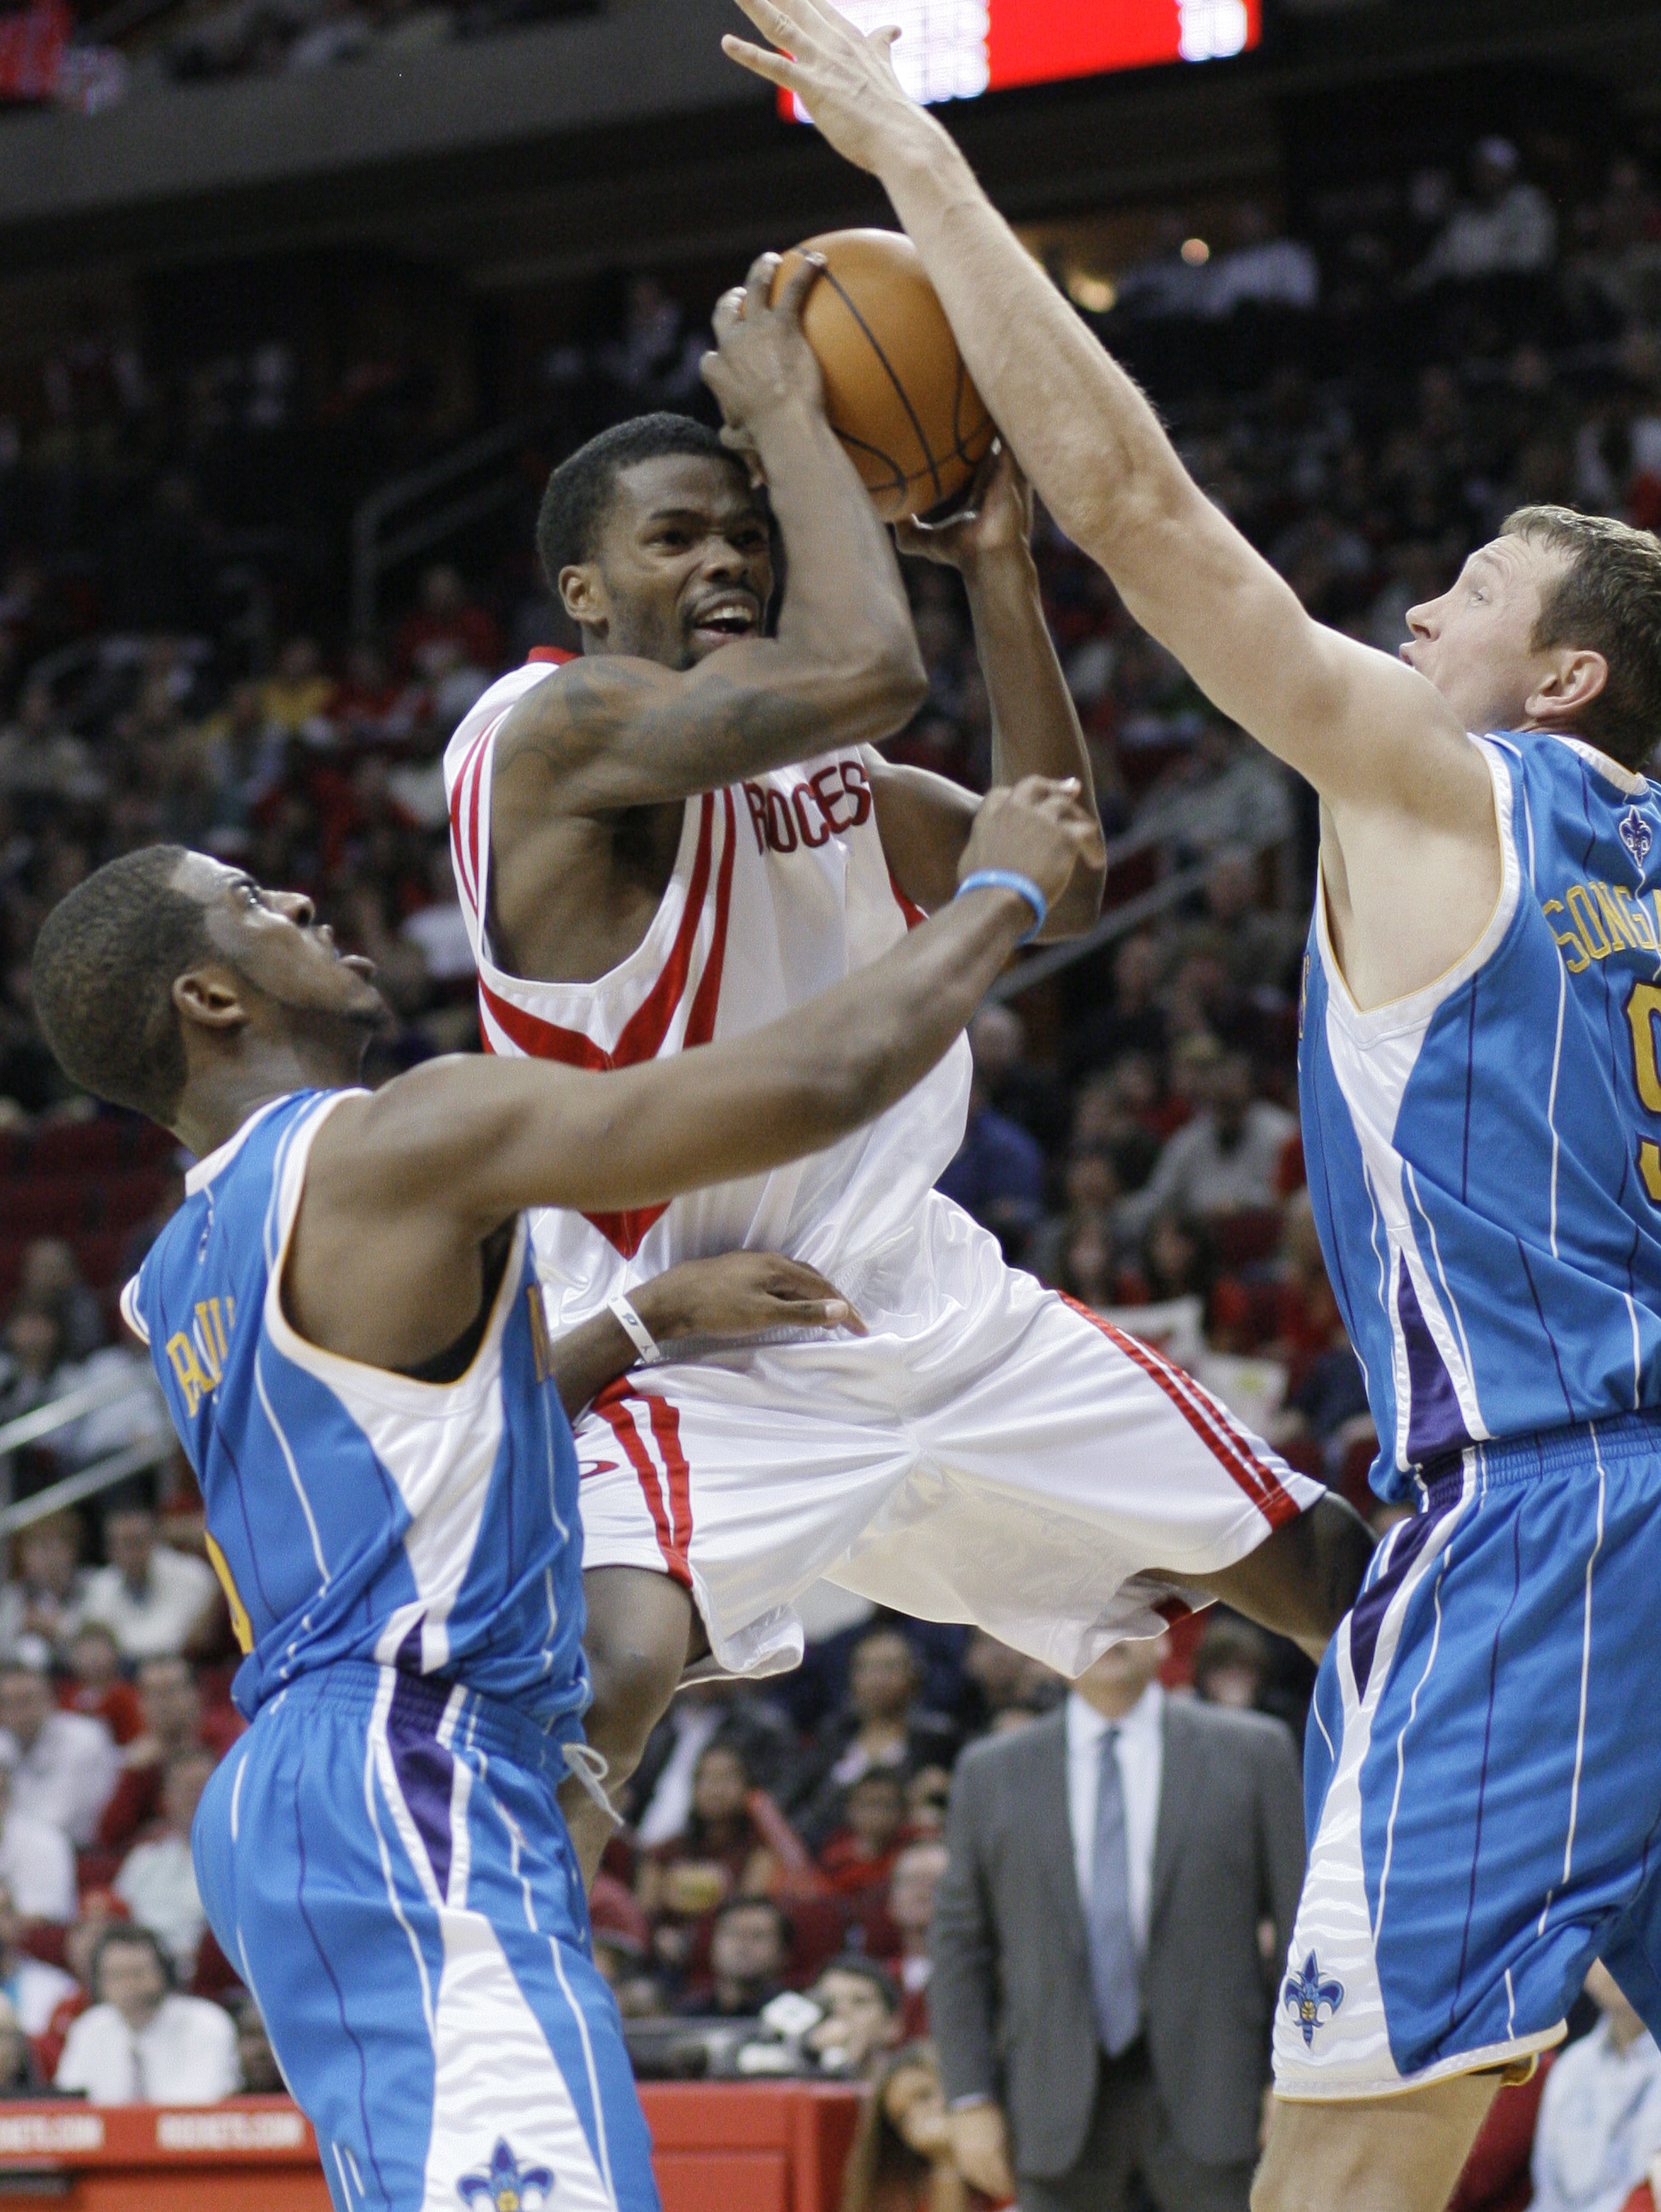 Houston Rockets' Aaron Brooks, center, goes to the basket between New Orleans Hornets' Chris Paul, left, and Darius Songaila, of Lithuania, during t...